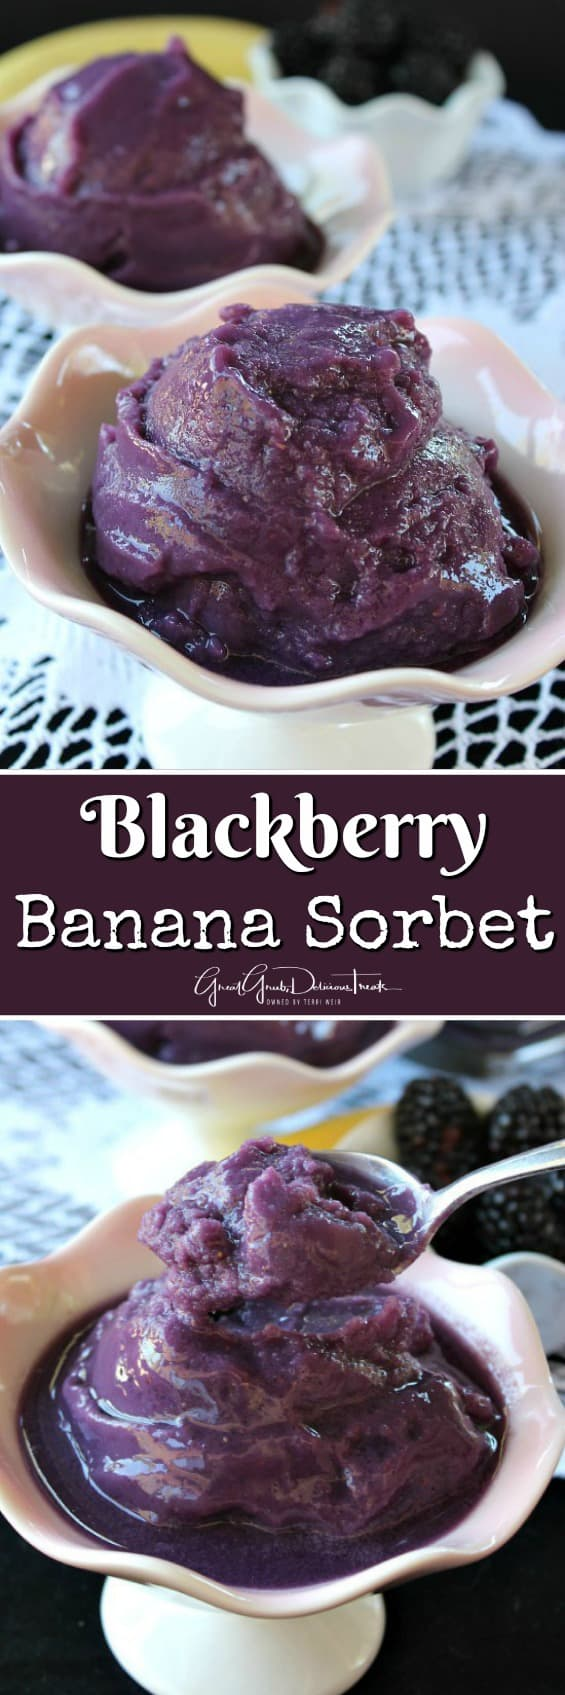 Blackberry Banana Sorbet